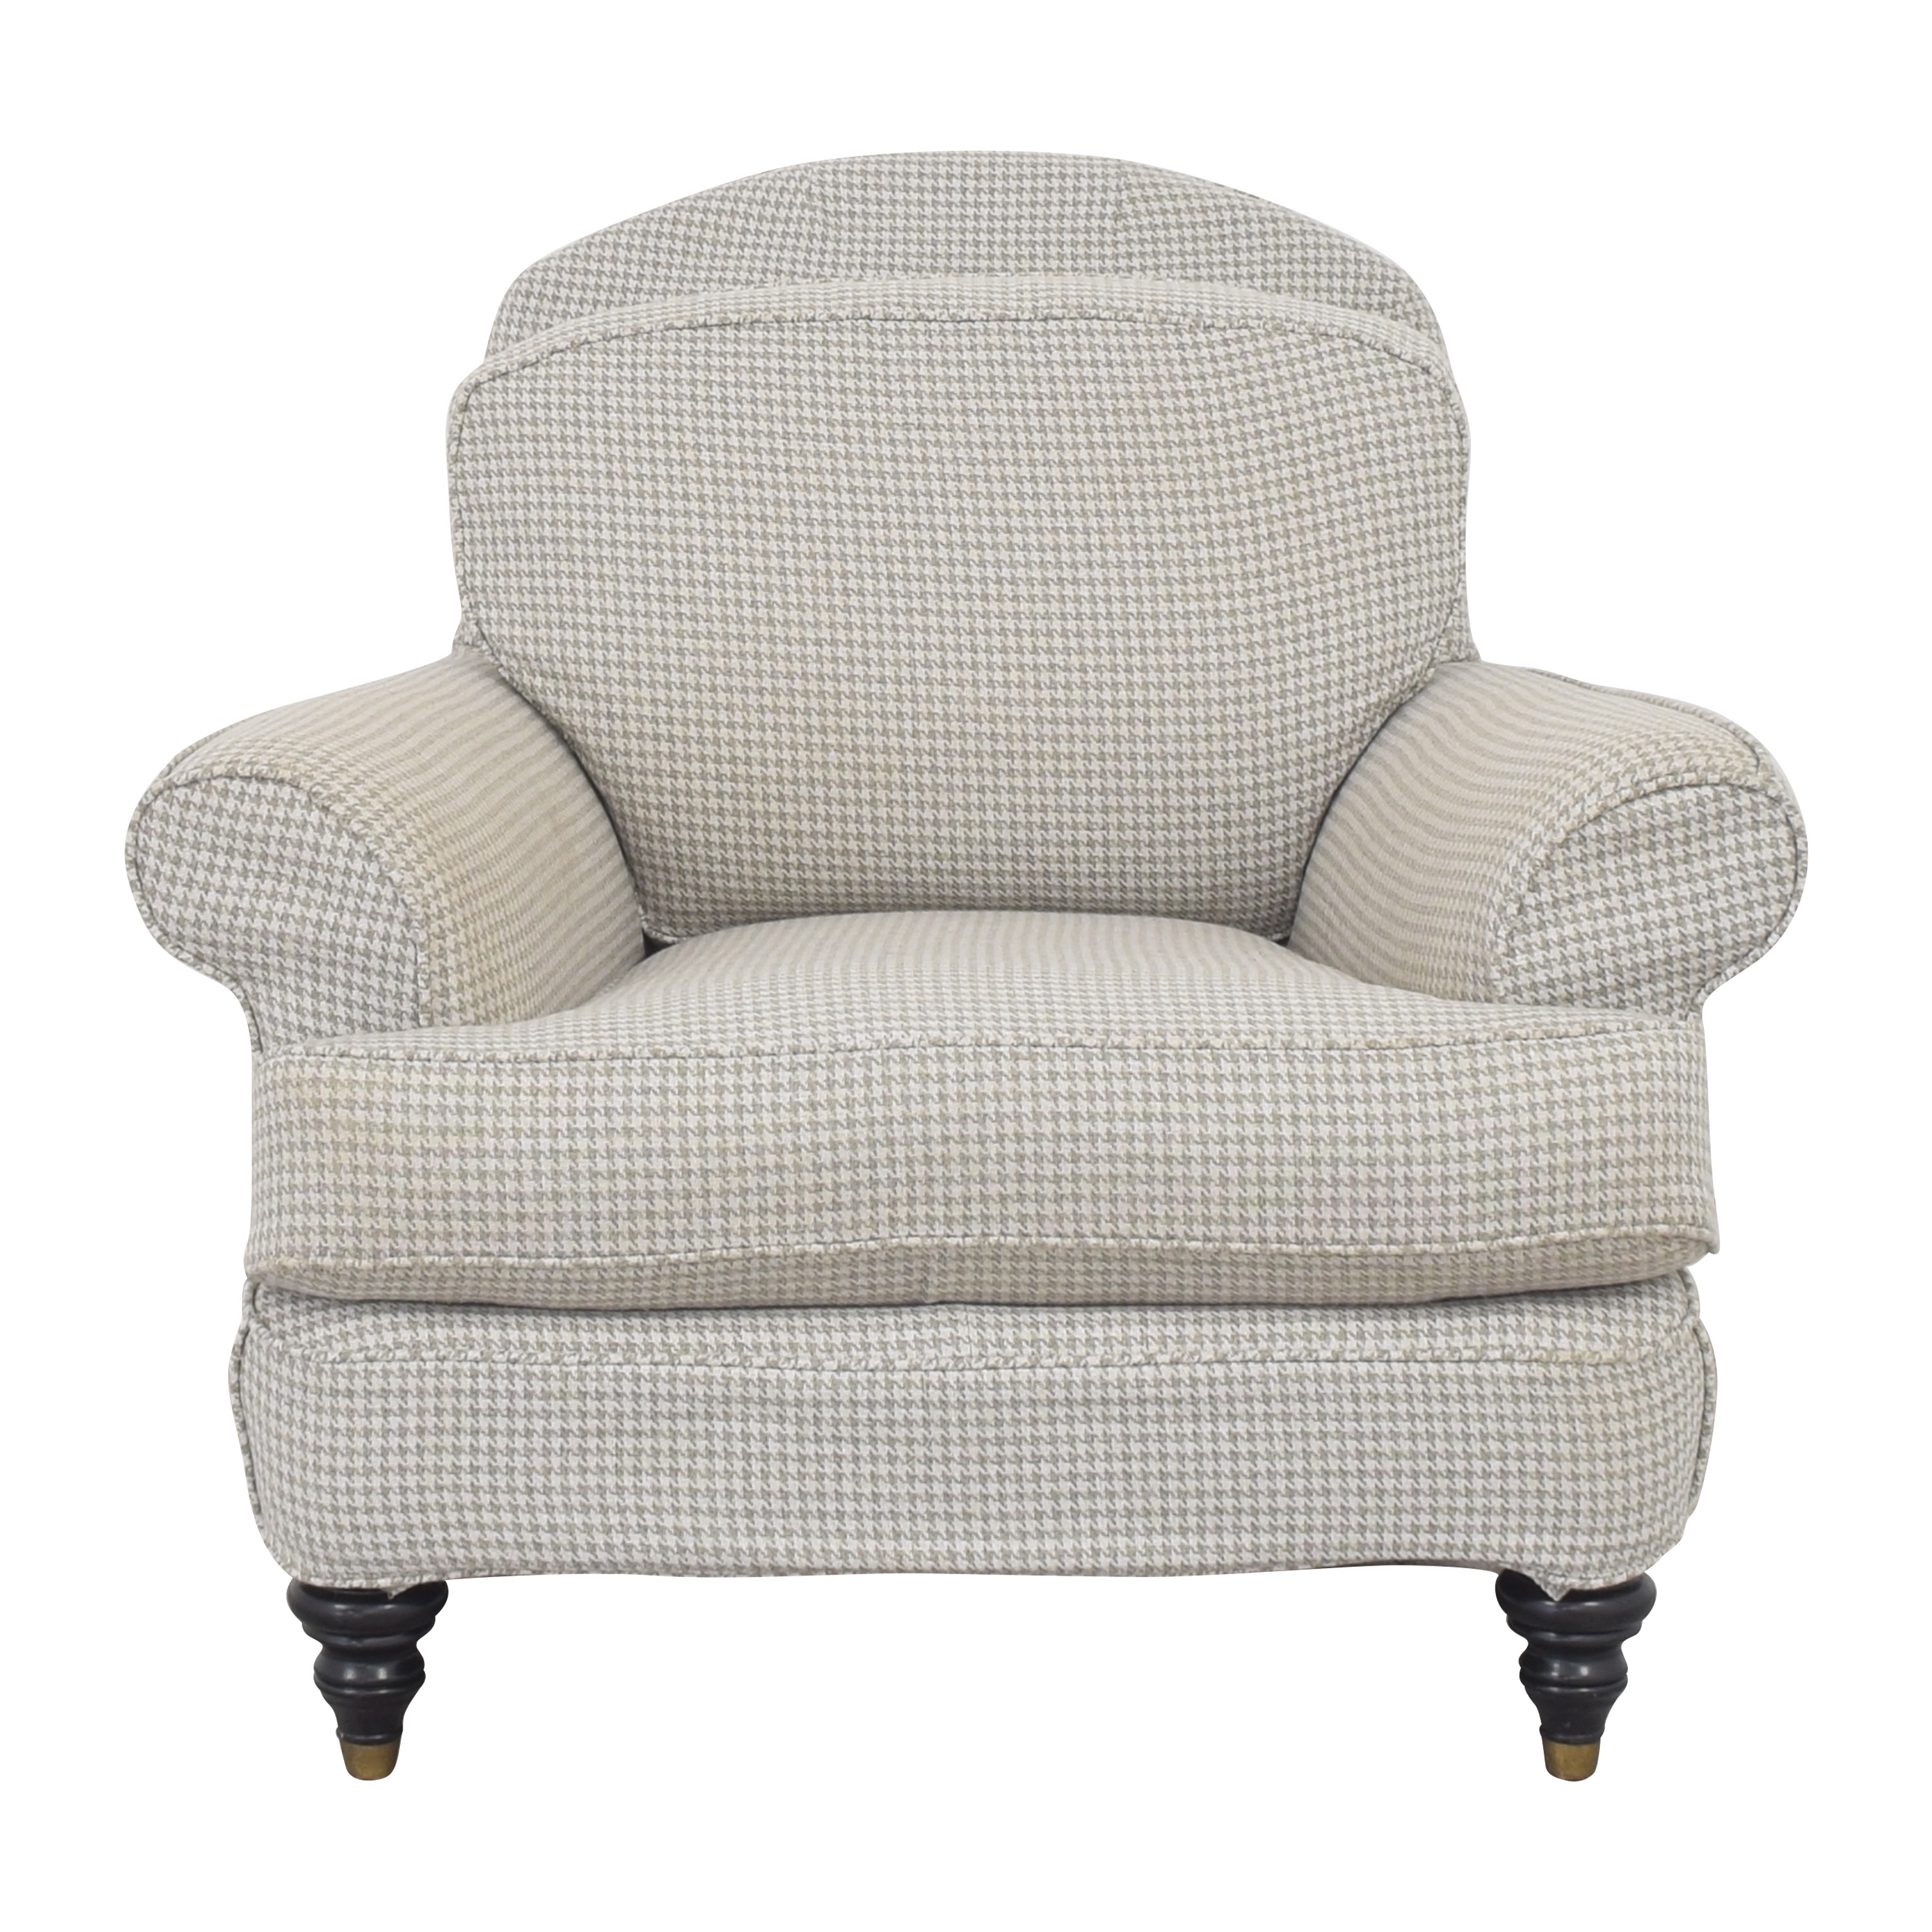 buy Ethan Allen Ethan Allen Slipcovered Arm Chair online